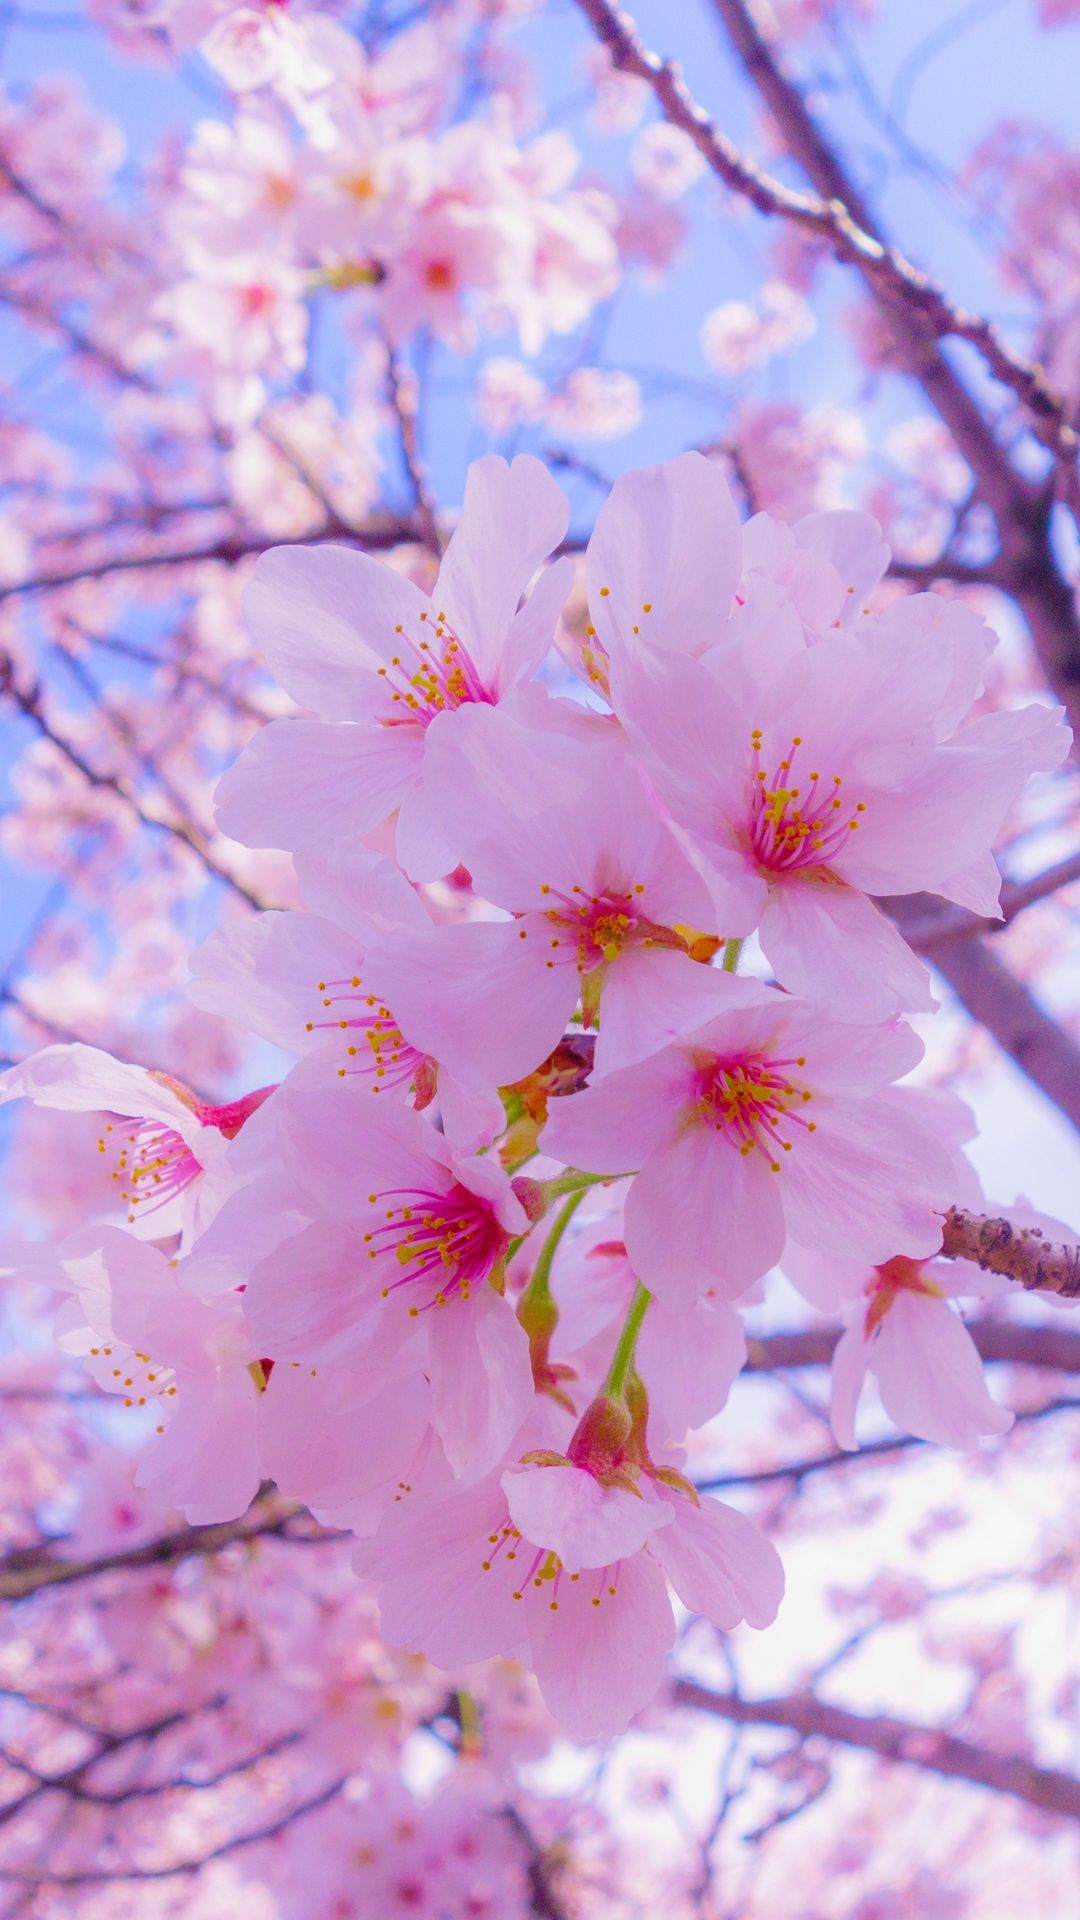 Bloom Flowers Sakura Infinity Wallpaper Cherry Blossom